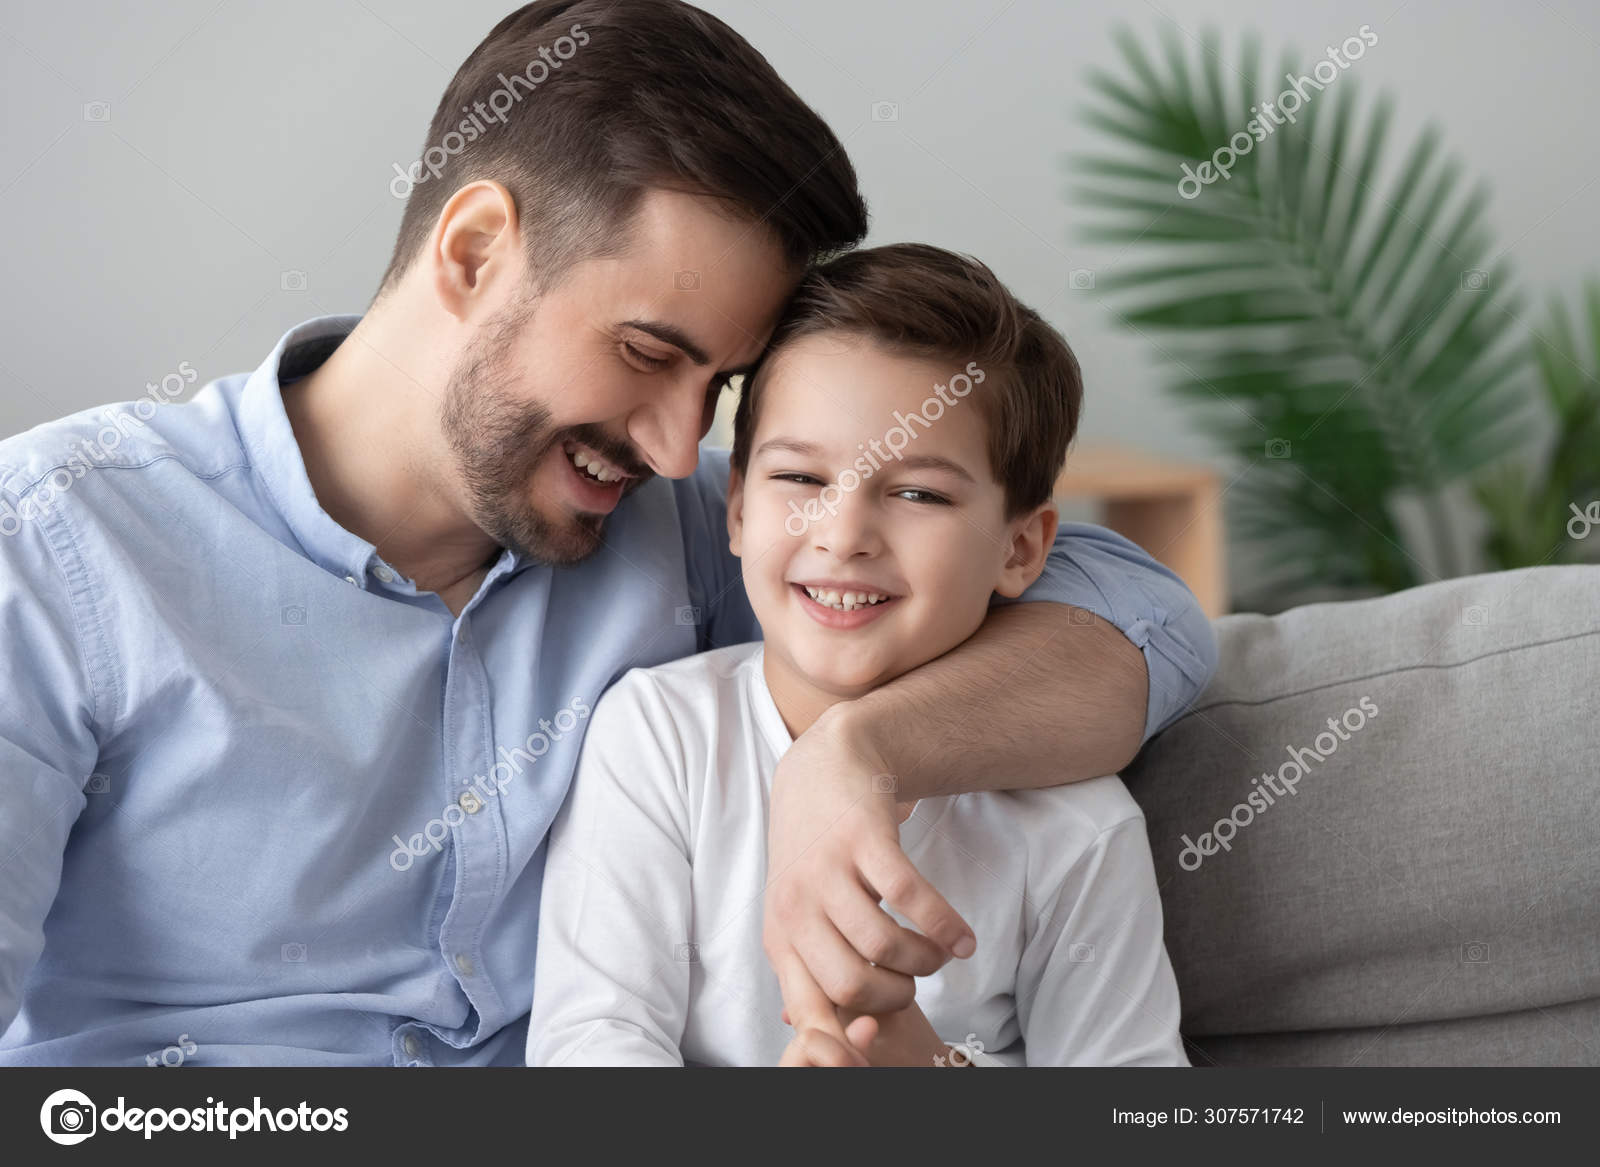 Affectionate Dad And Child Son Bonding Embracing Sit On Sofa Stock Photo C Fizkes 307571742